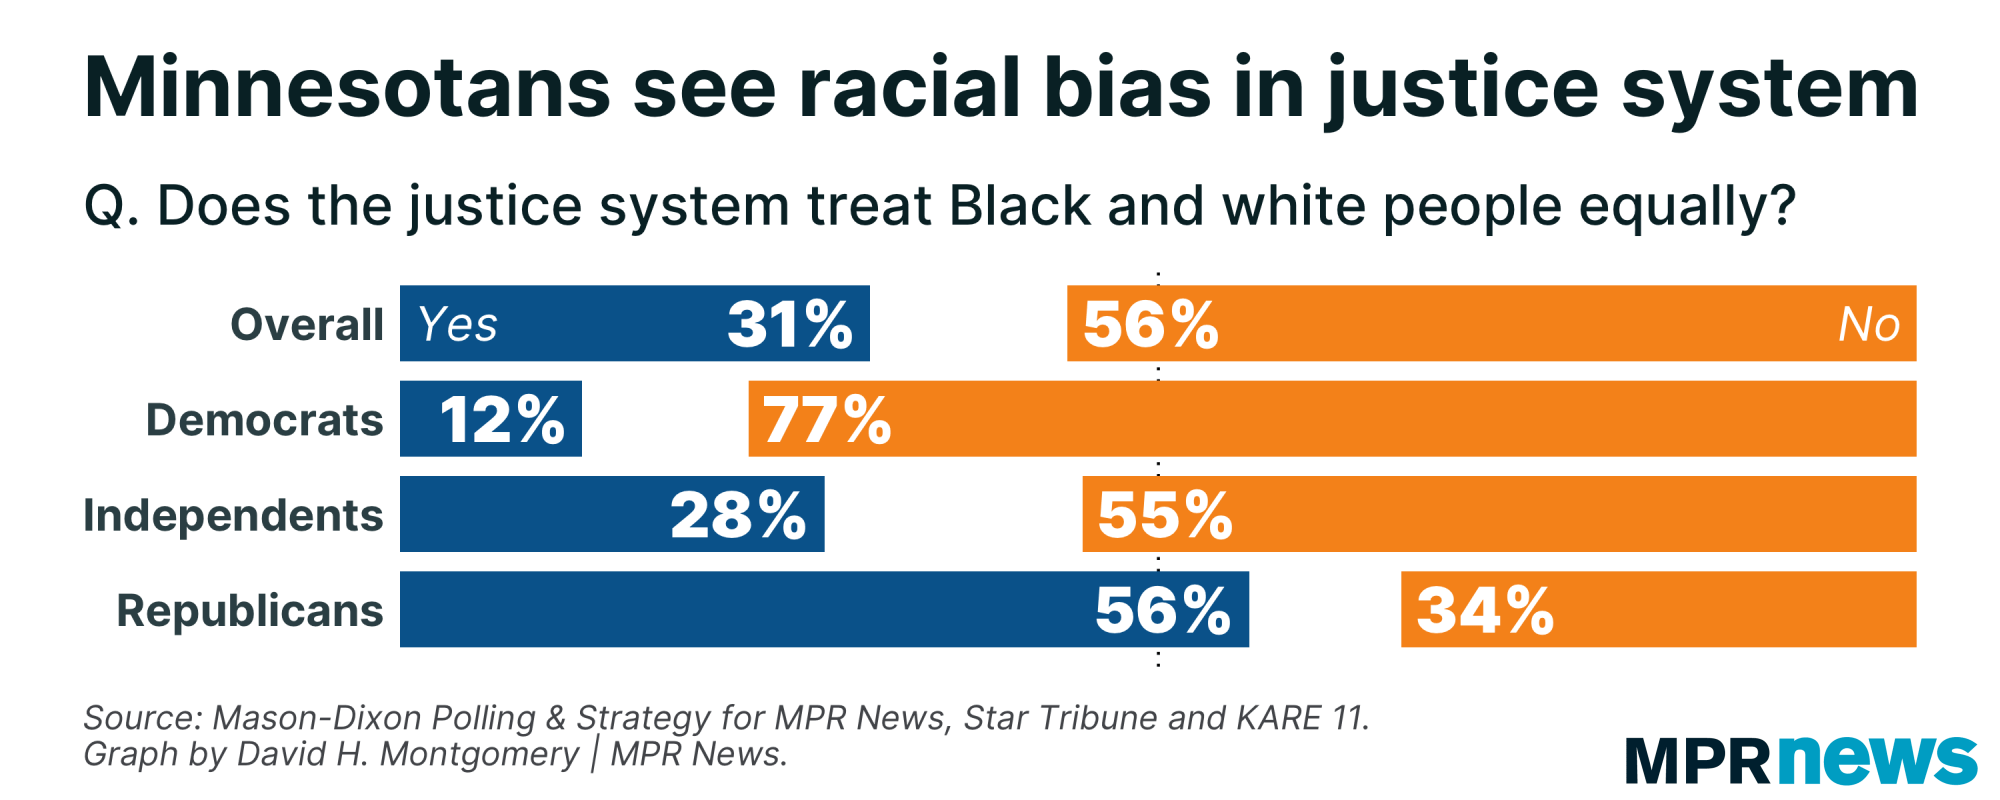 56% of MN says the justice system treats Black, white people unequally